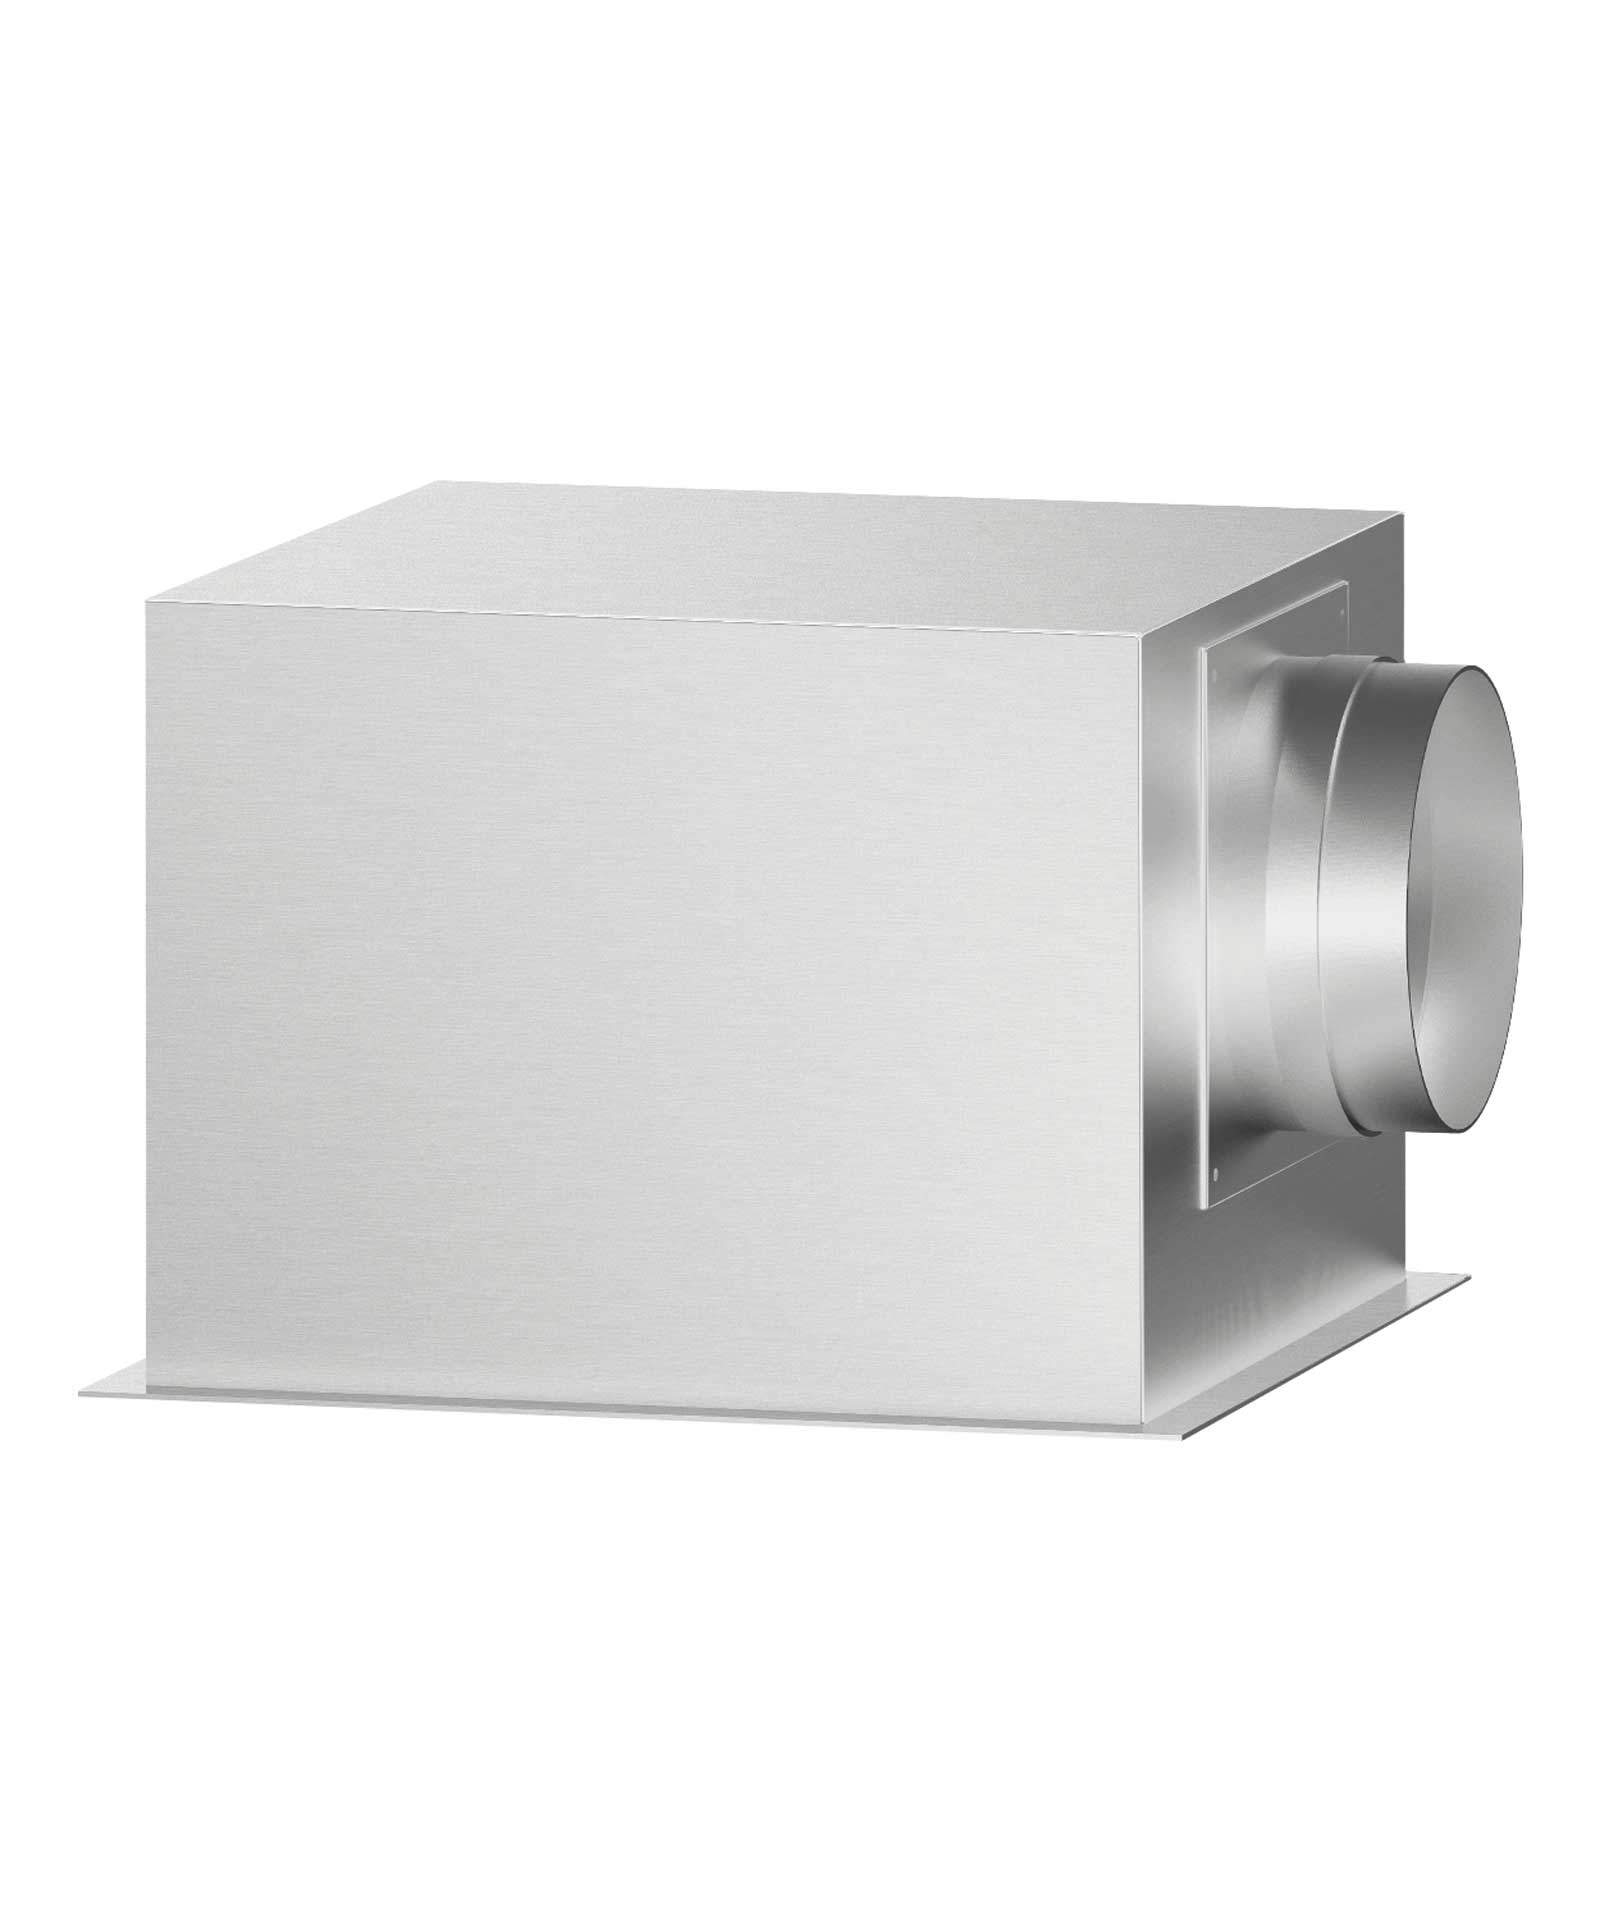 Downdraft Internal Blower